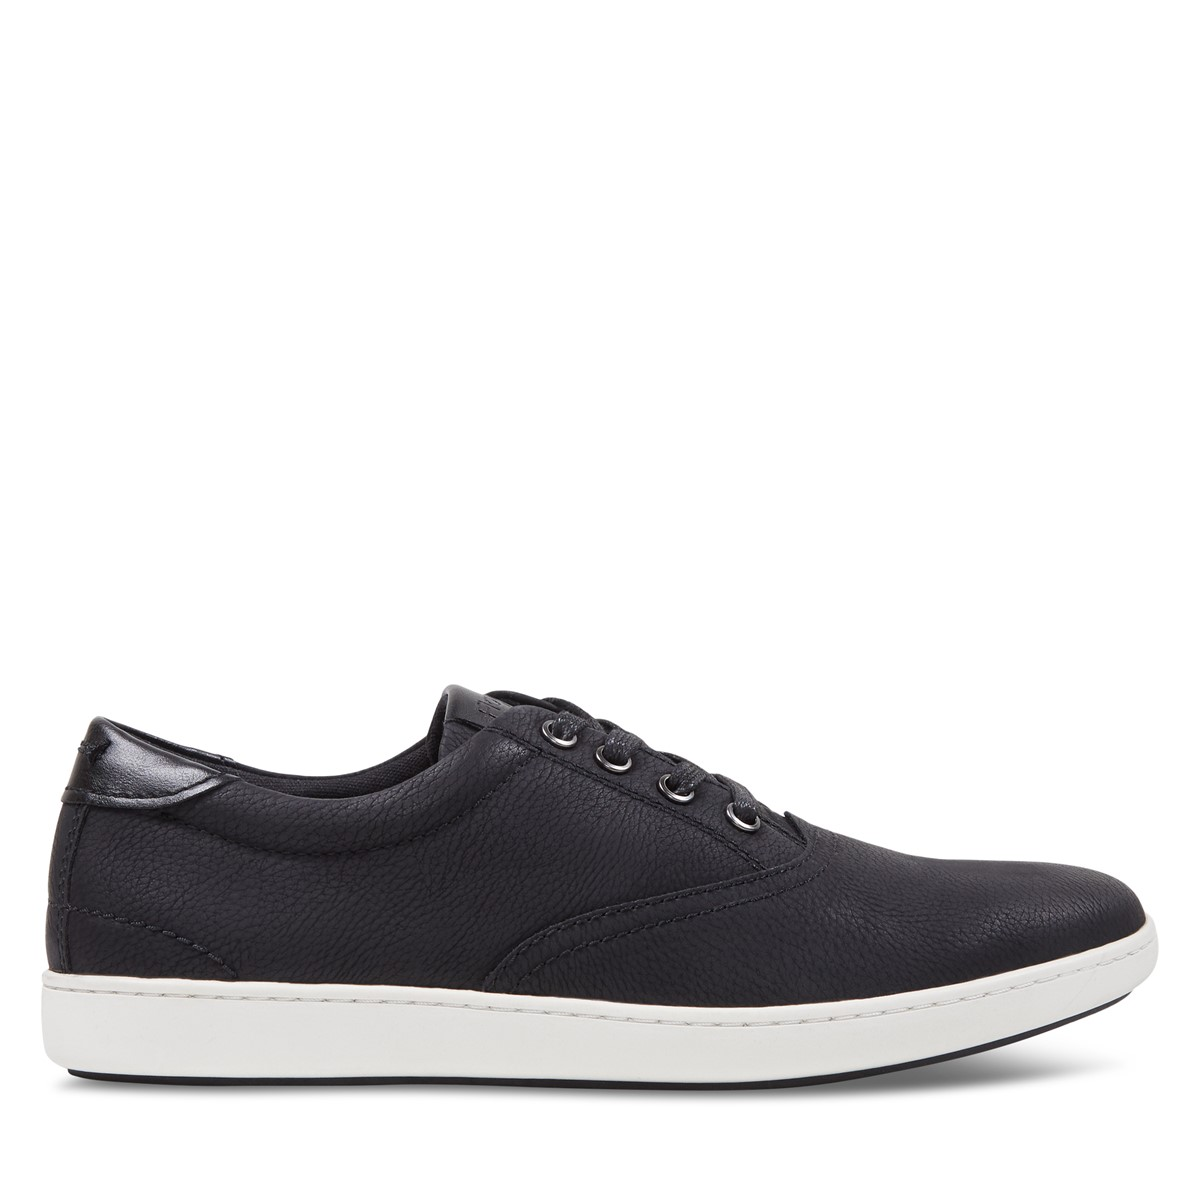 Men's Nico Shoes in Black